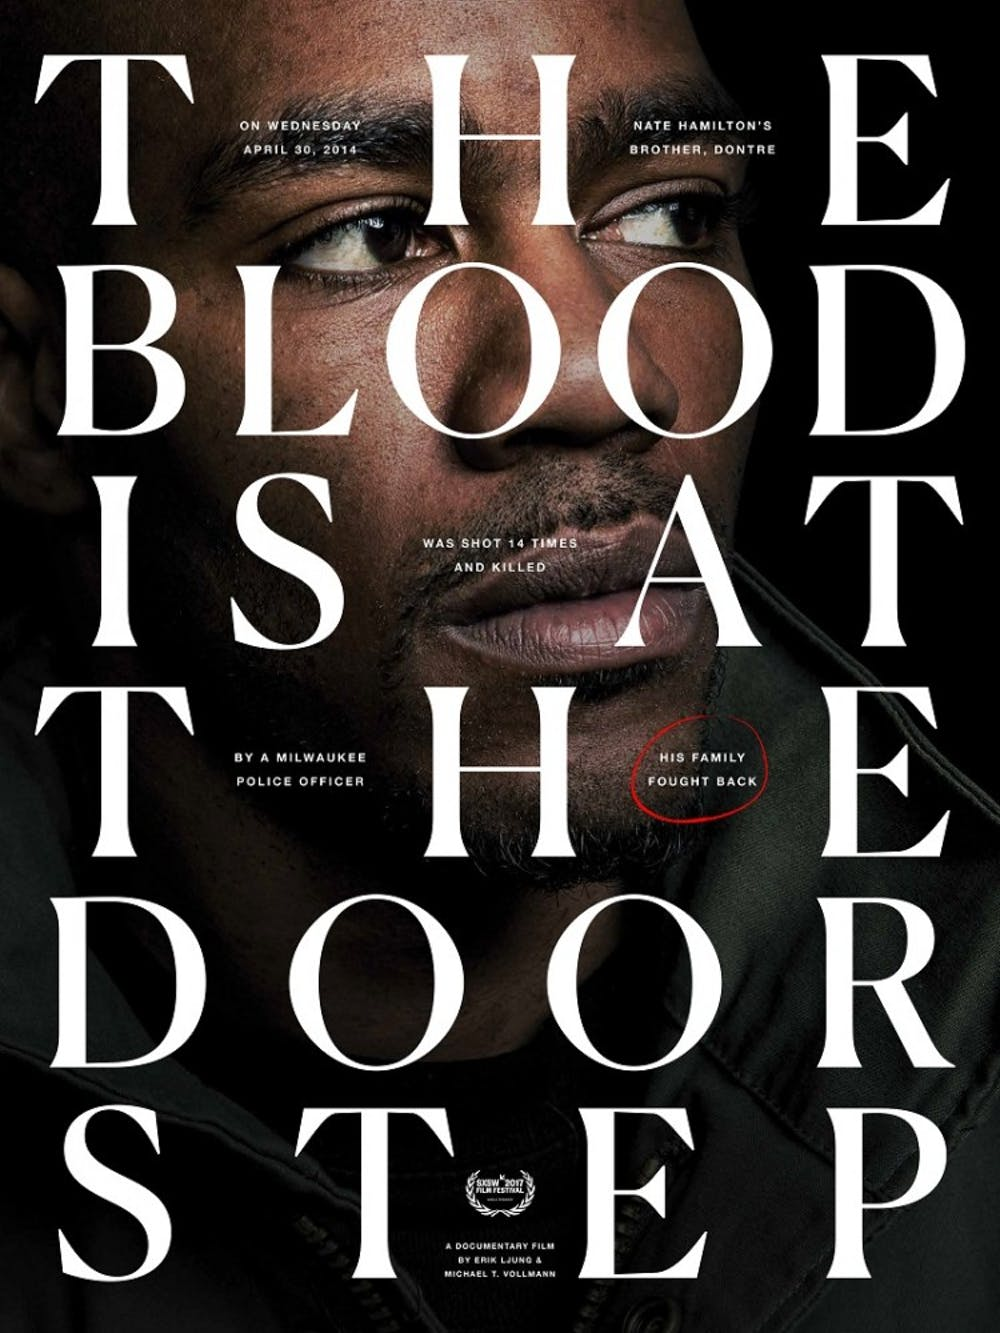 Fueled by intimate and enthralling footage that can't be seen anywhere else, the film balances hard-hitting journalism and the humanity of the Hamiltons' fight.